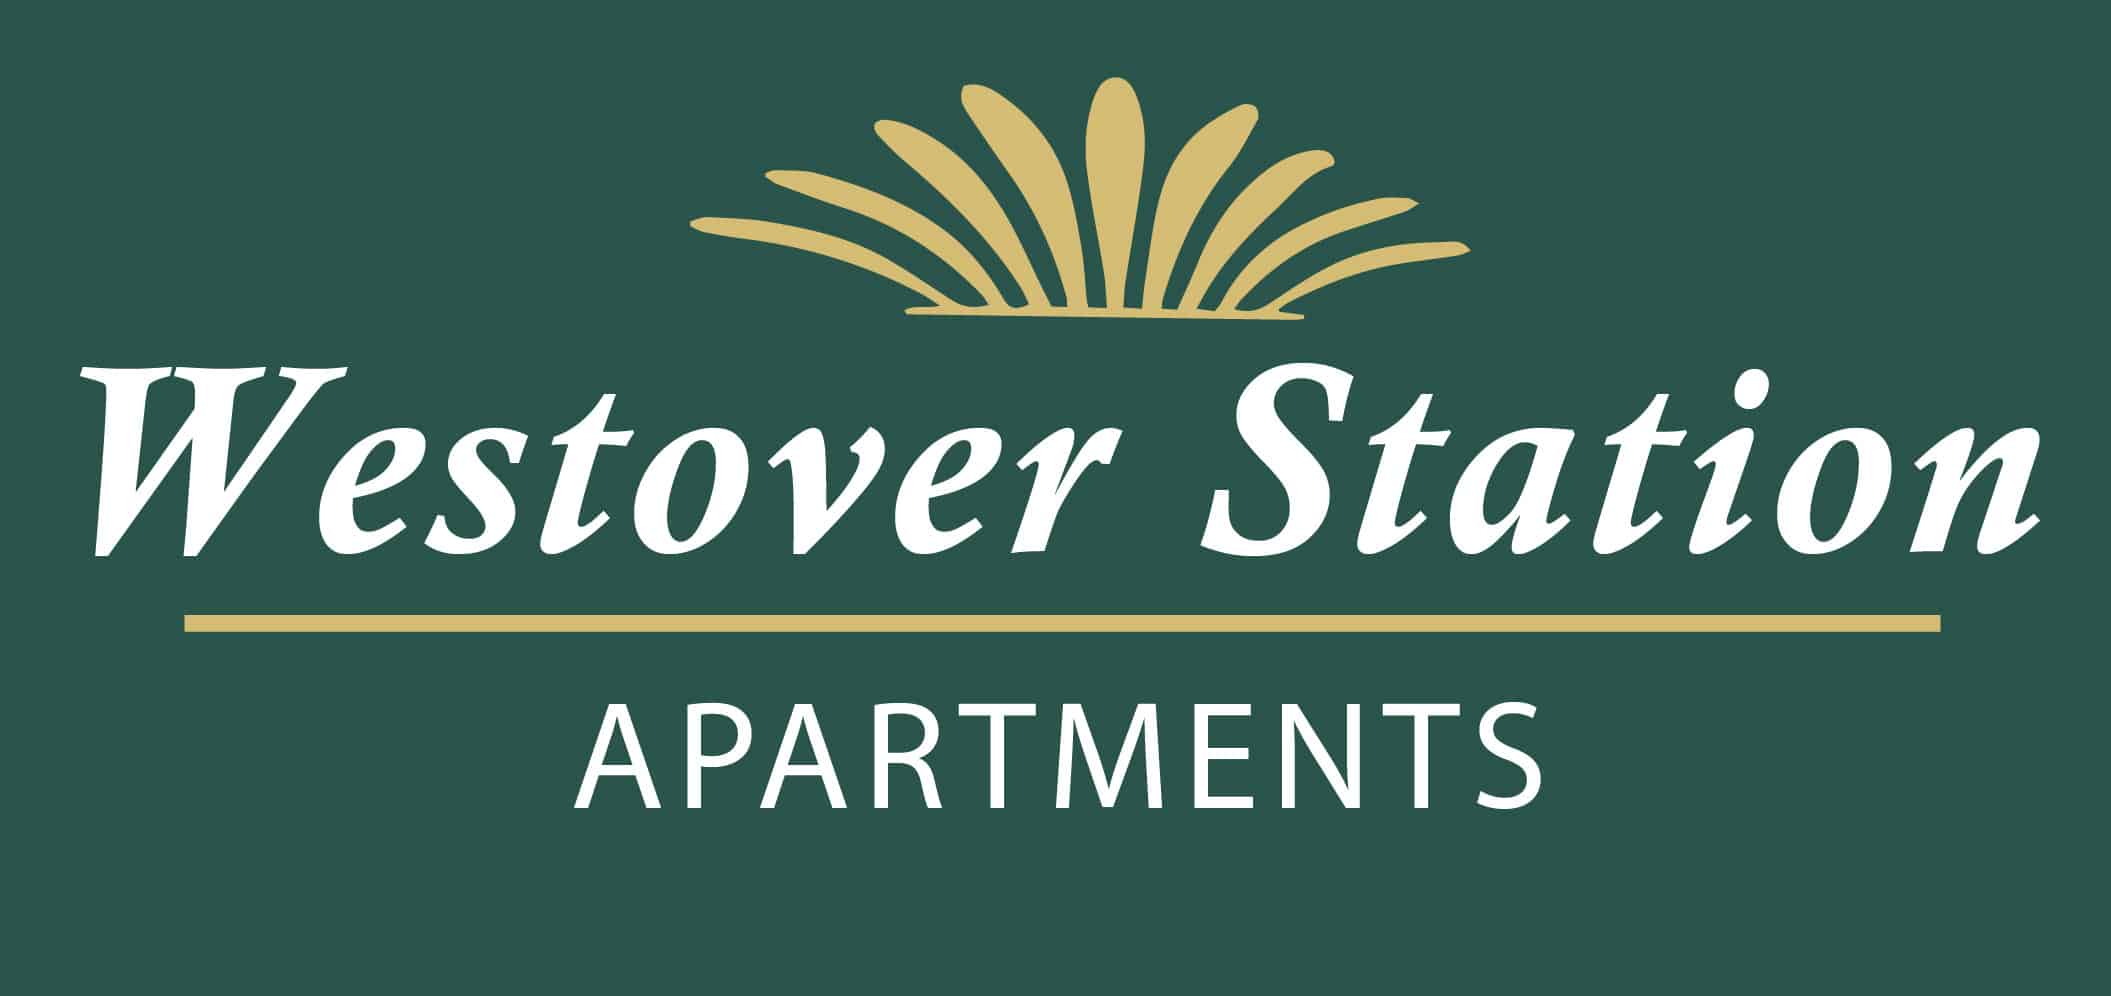 Westover Station Apartments